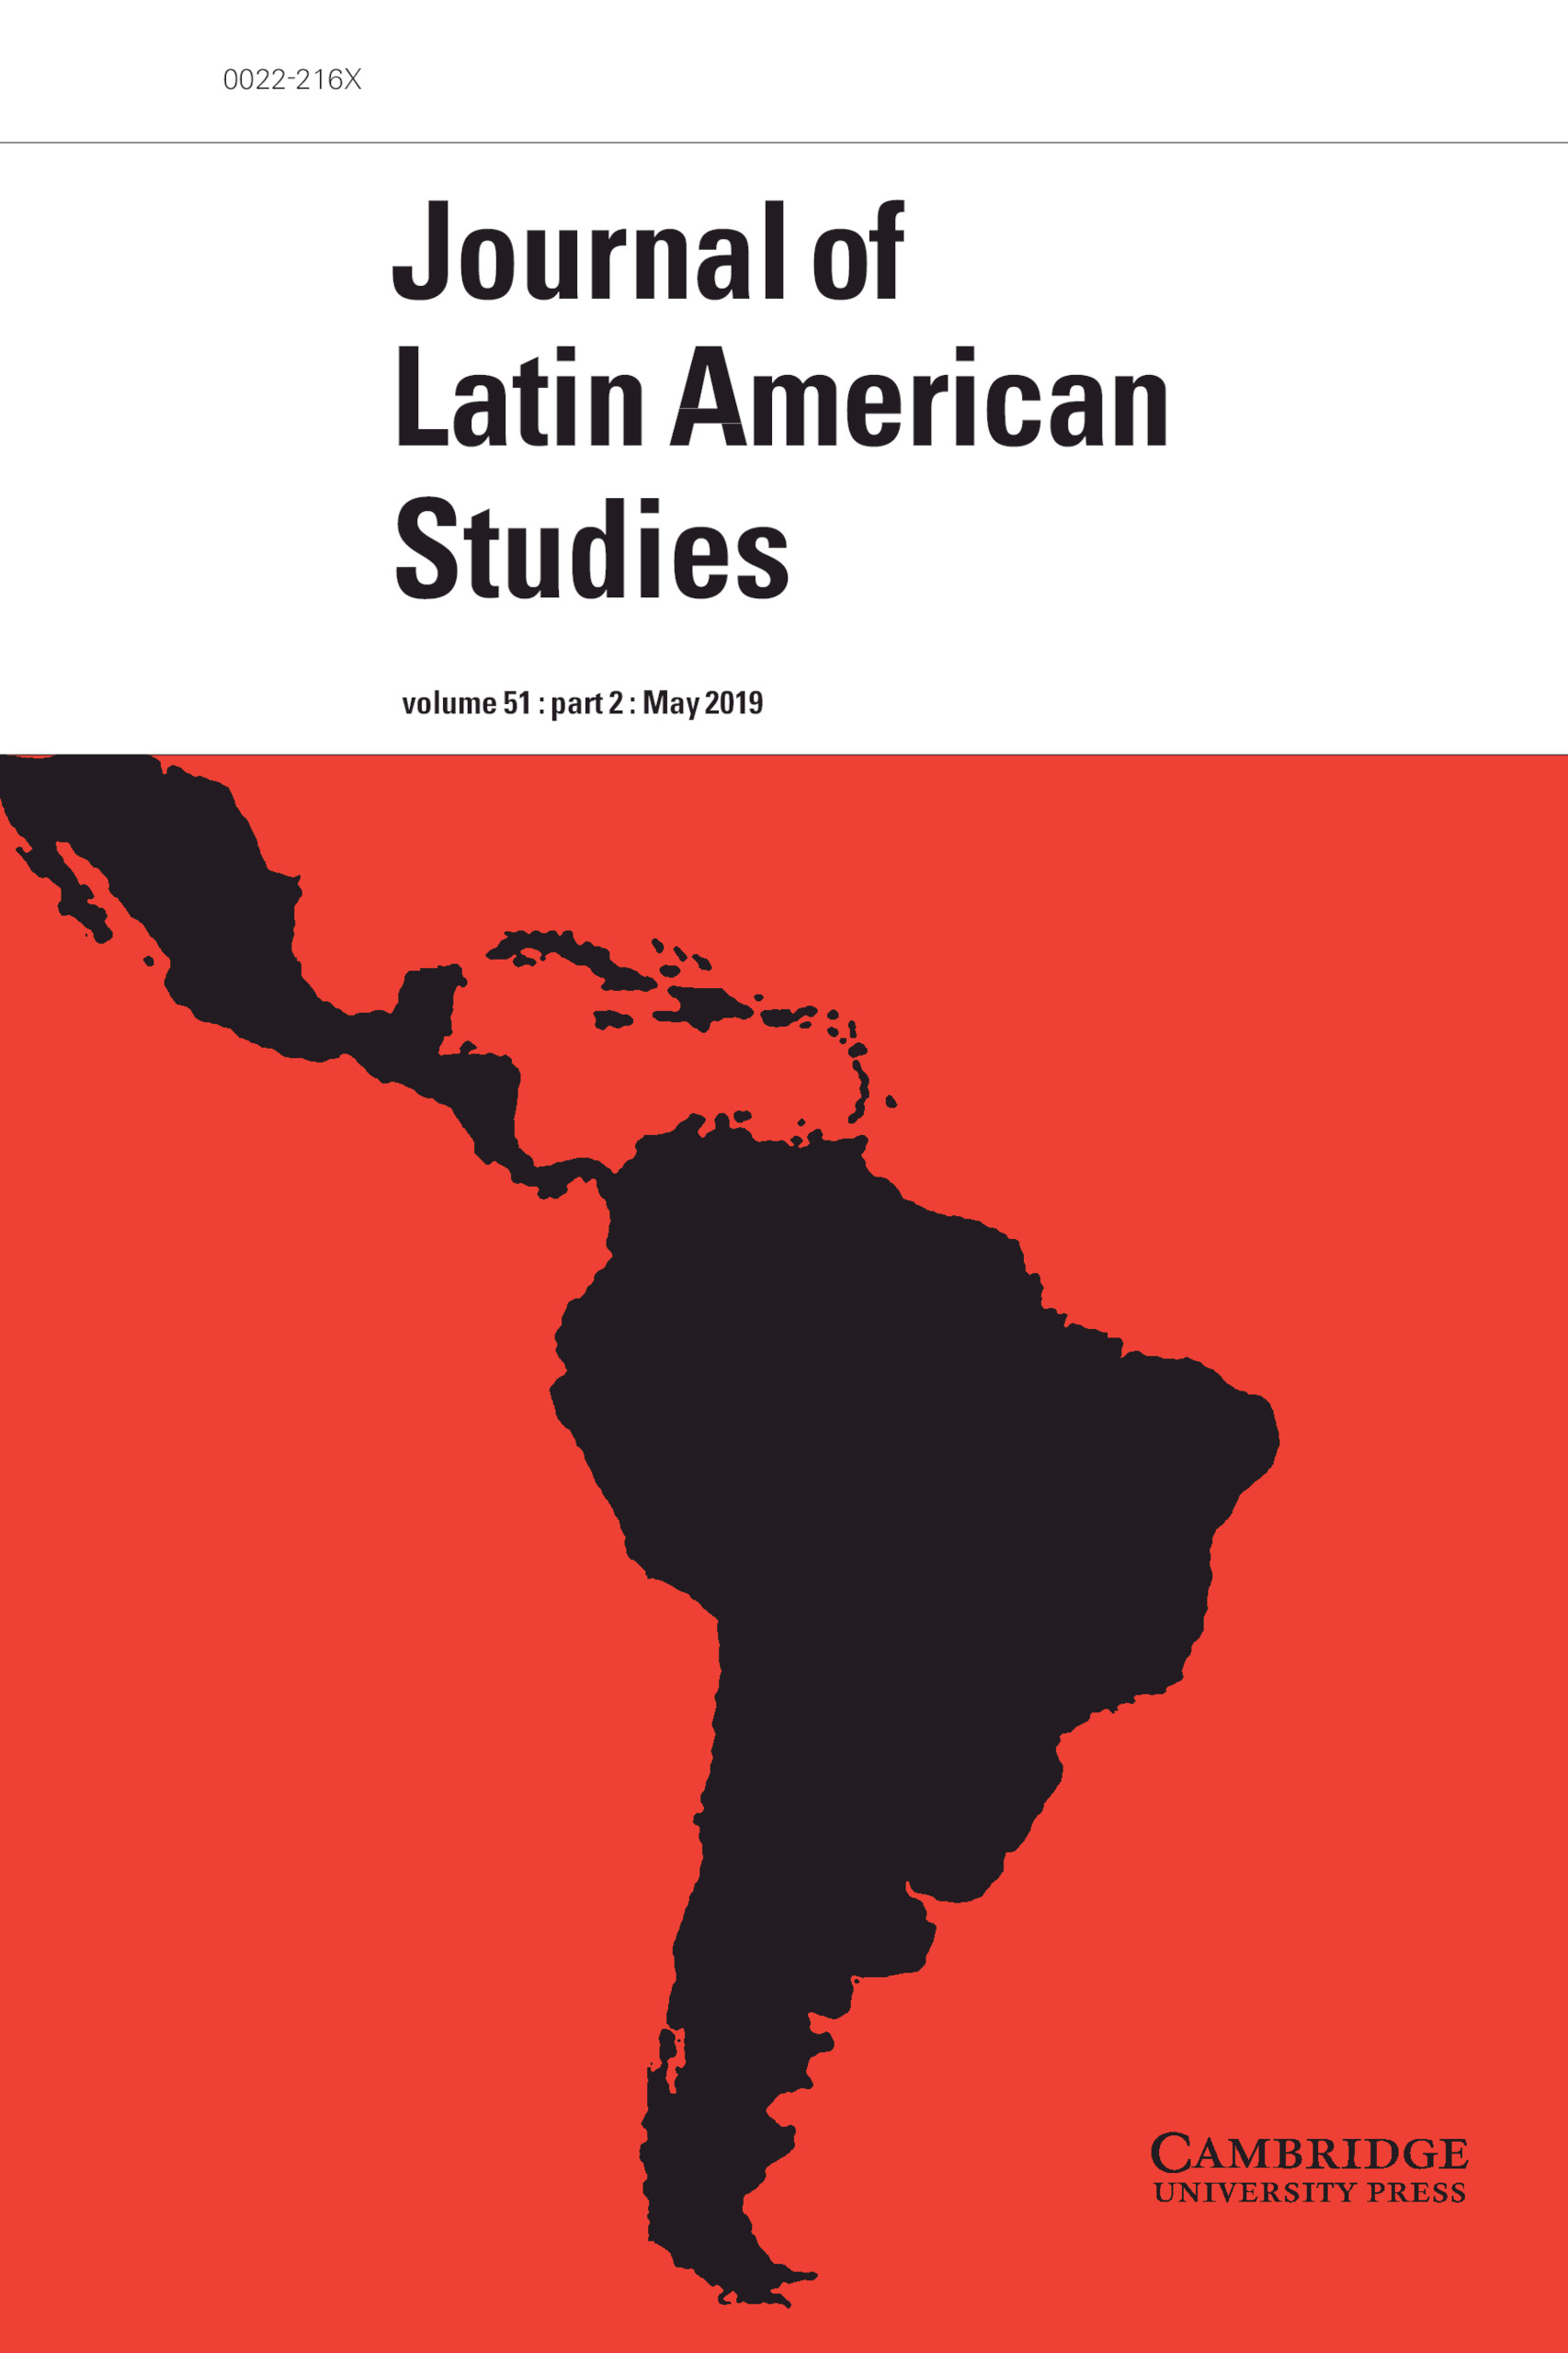 Journal Cover - Title in black lettering in a white banner above a picture of South and Central American continents against a red background.